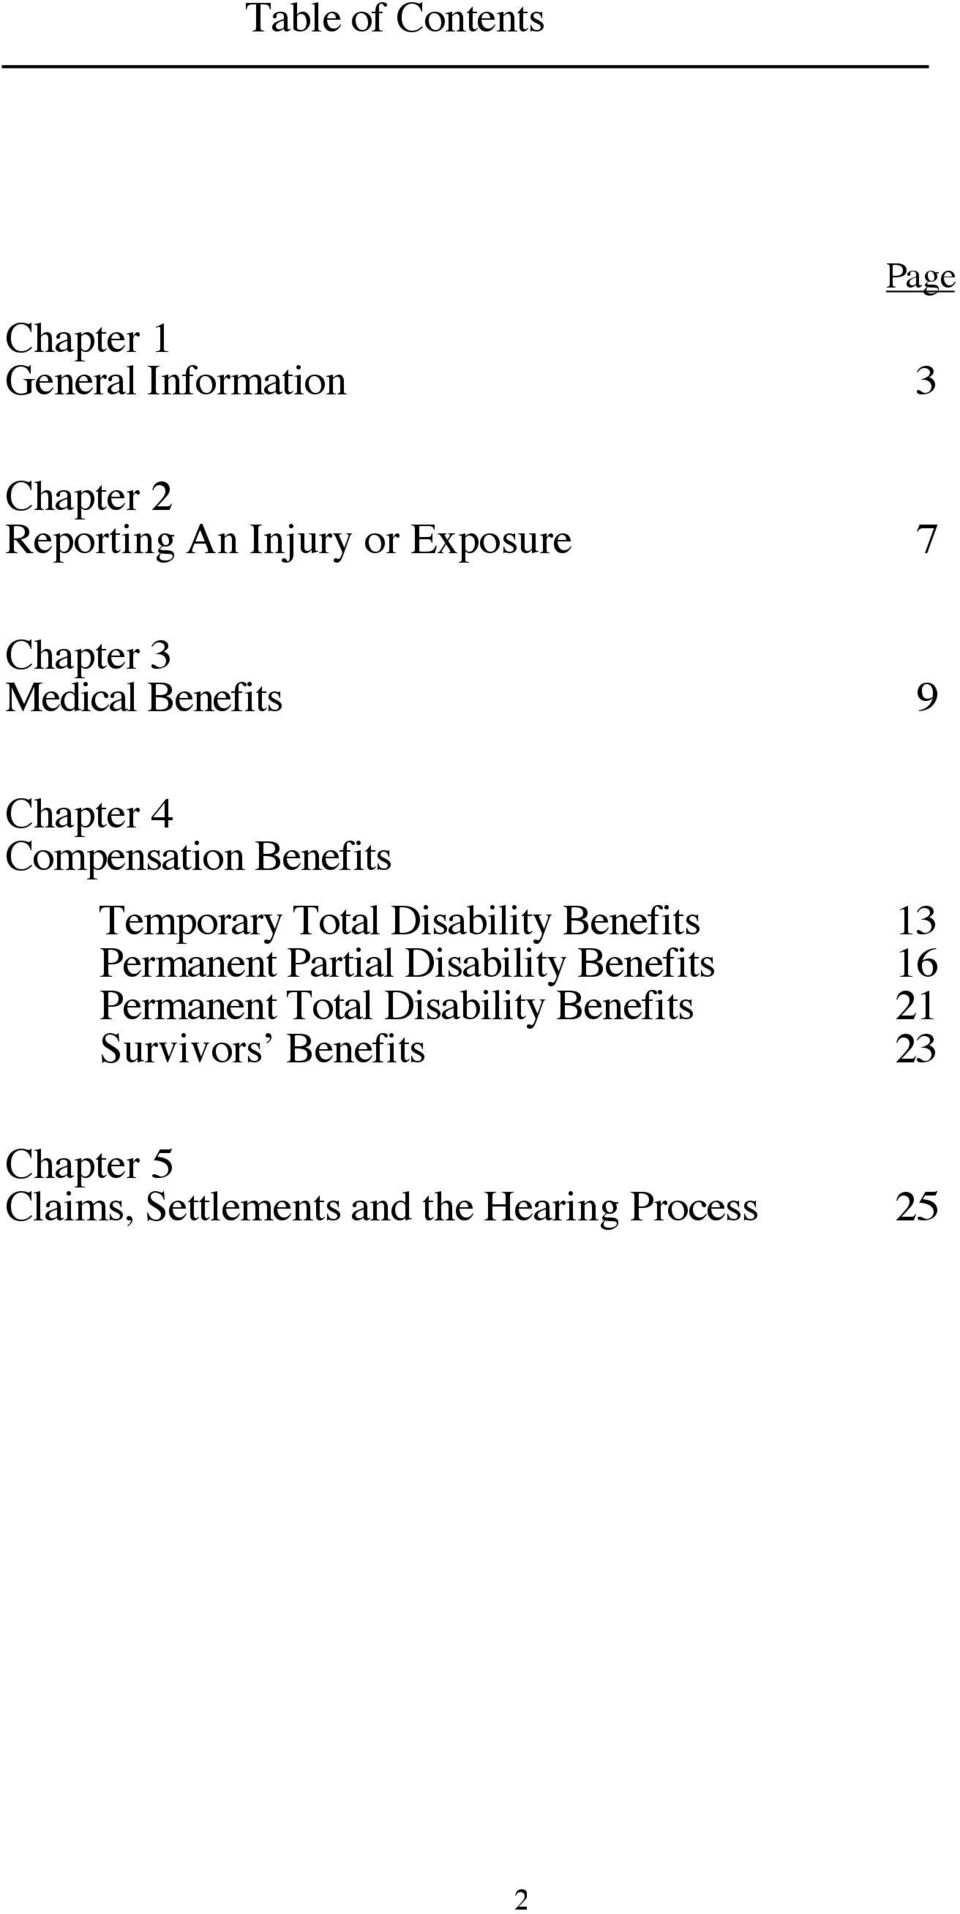 Disability Benefits 13 Permanent Partial Disability Benefits 16 Permanent Total